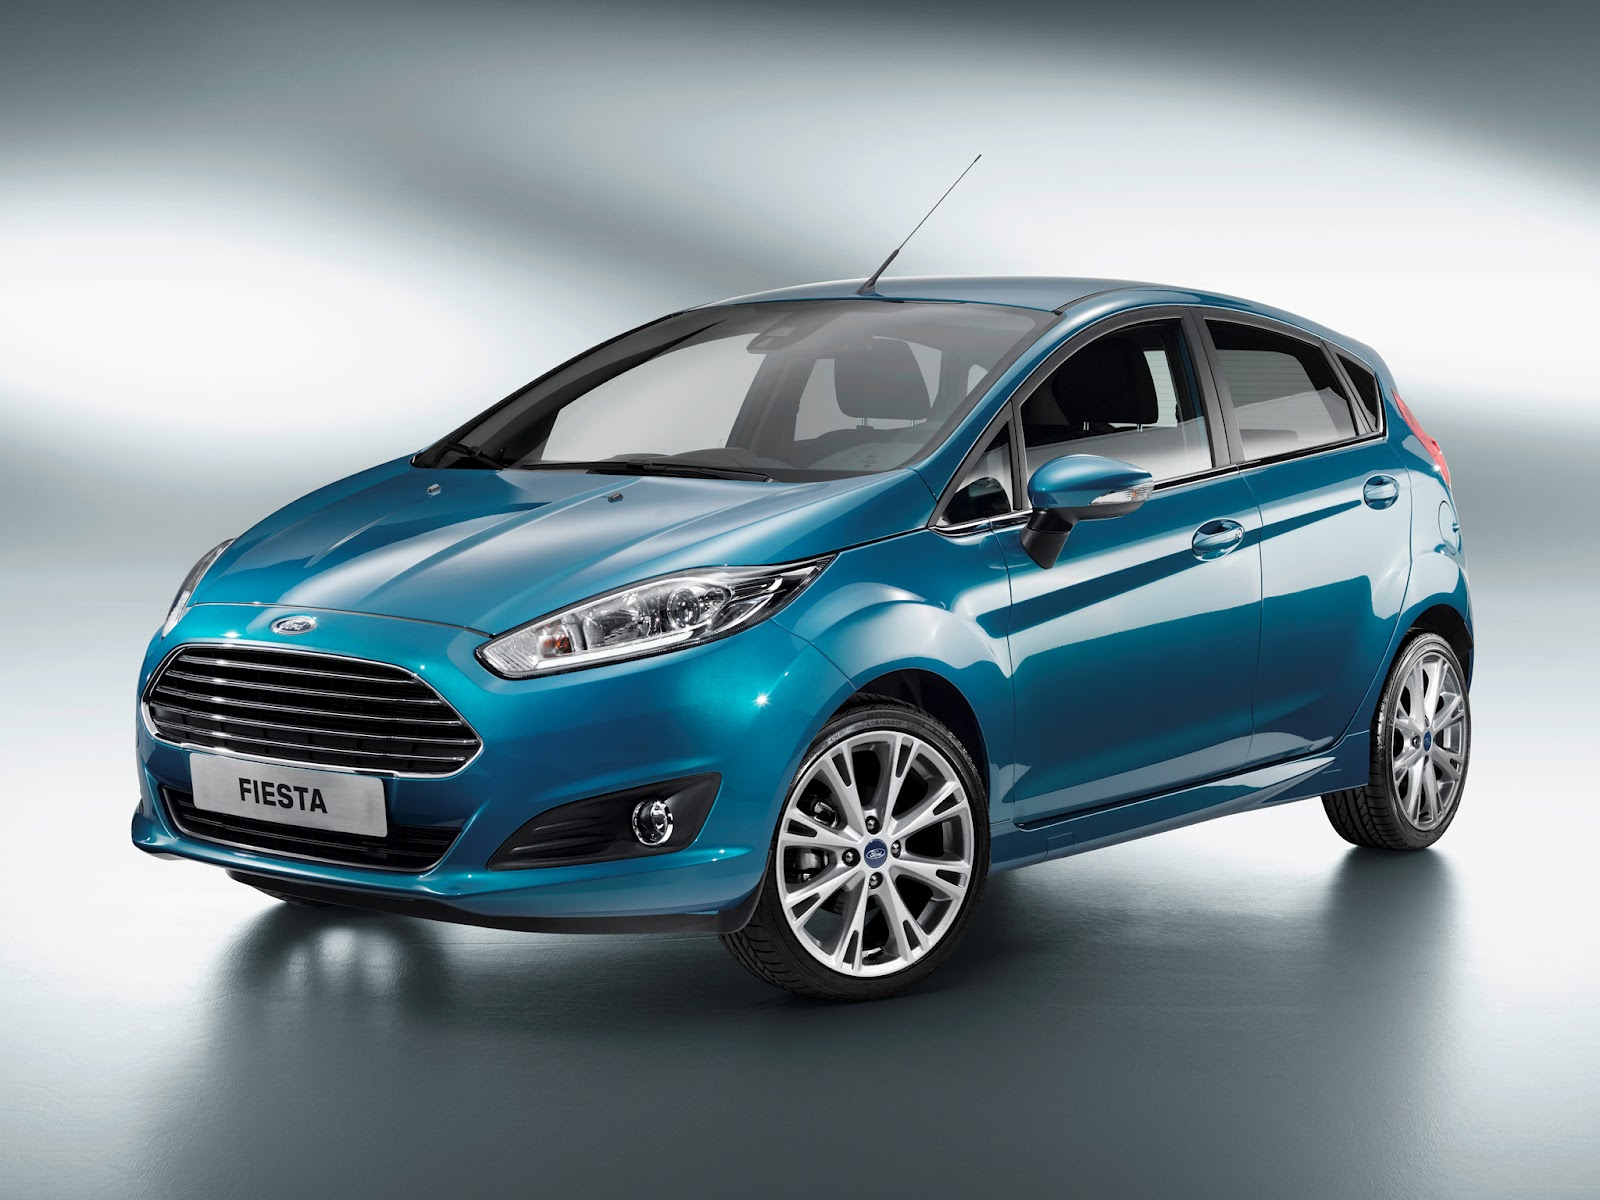 Ford_Fiesta_Facelift_1